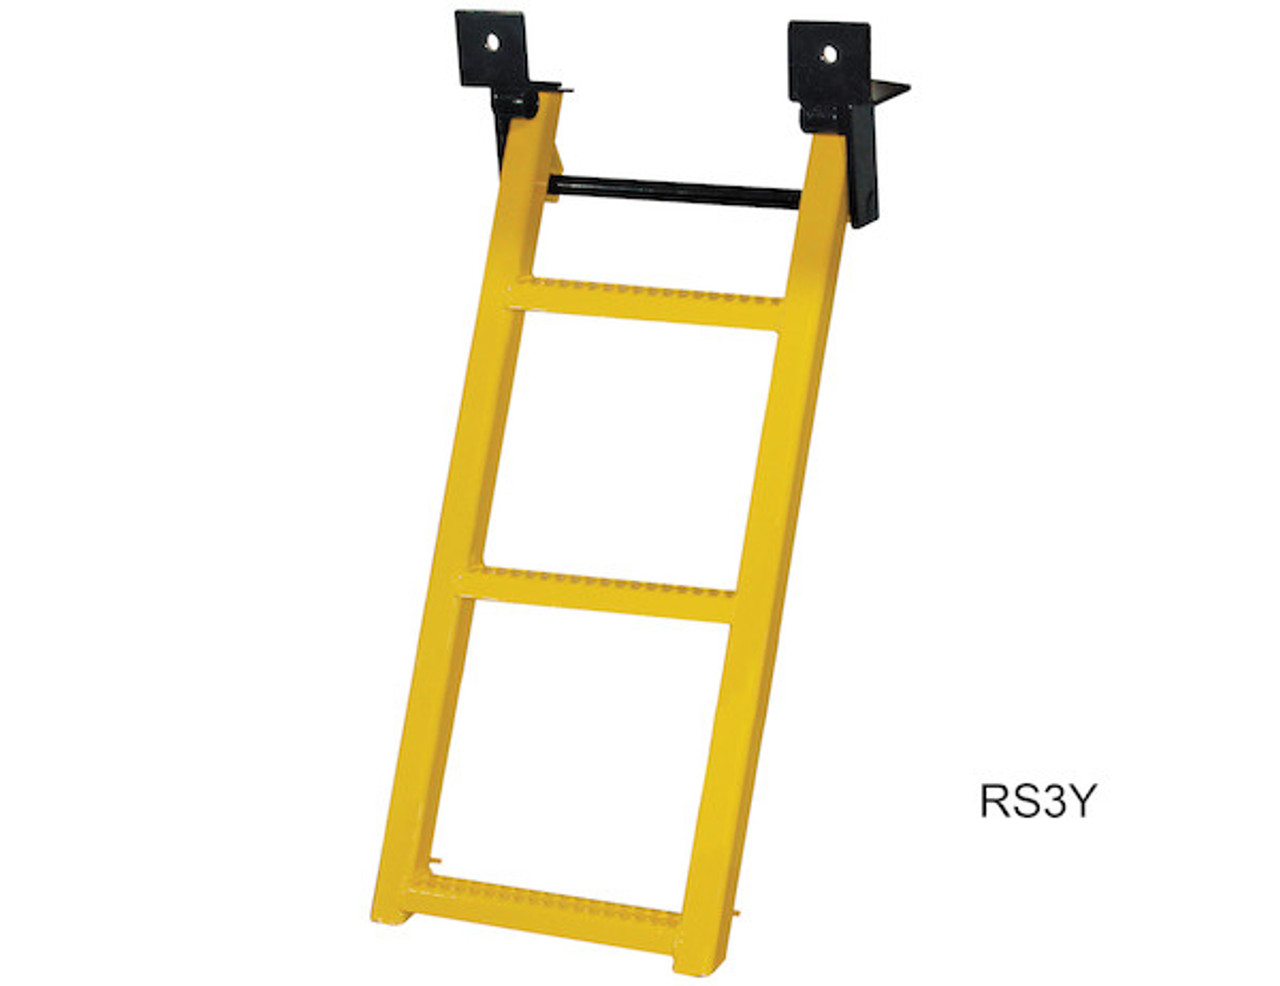 RS3Y Buyers 3-Rung Yellow Retractable Truck Steps With Nonslip Tread - 17.38 X 35 Inch